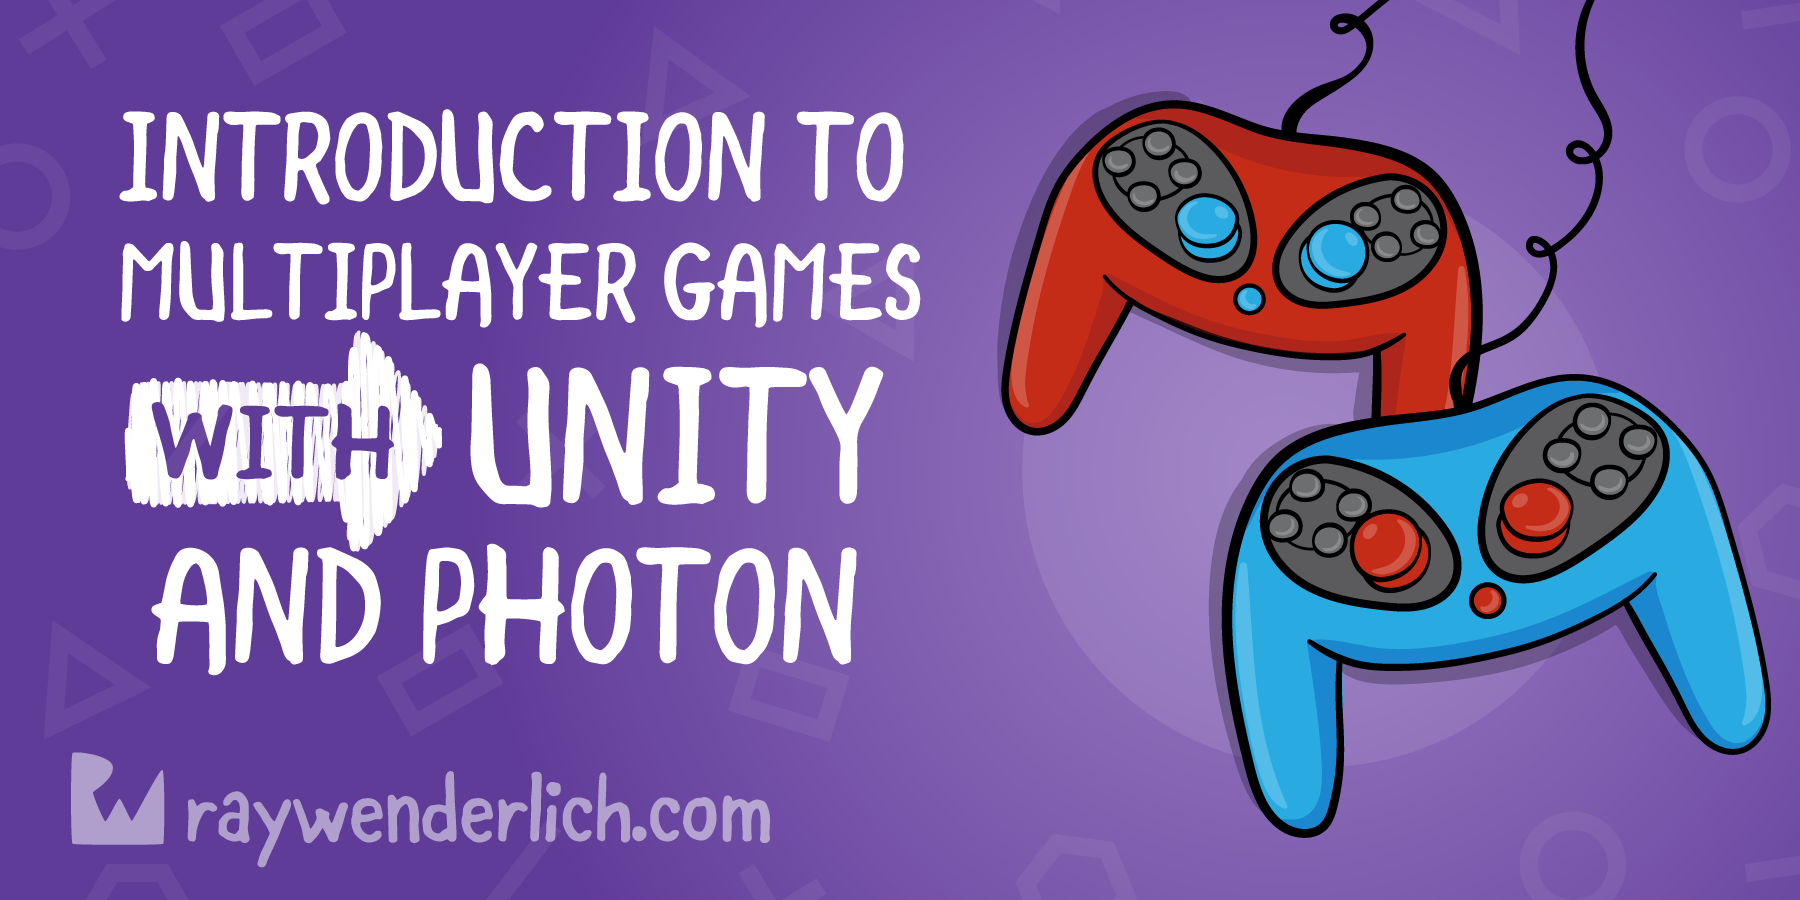 Introduction to Multiplayer Games With Unity and Photon